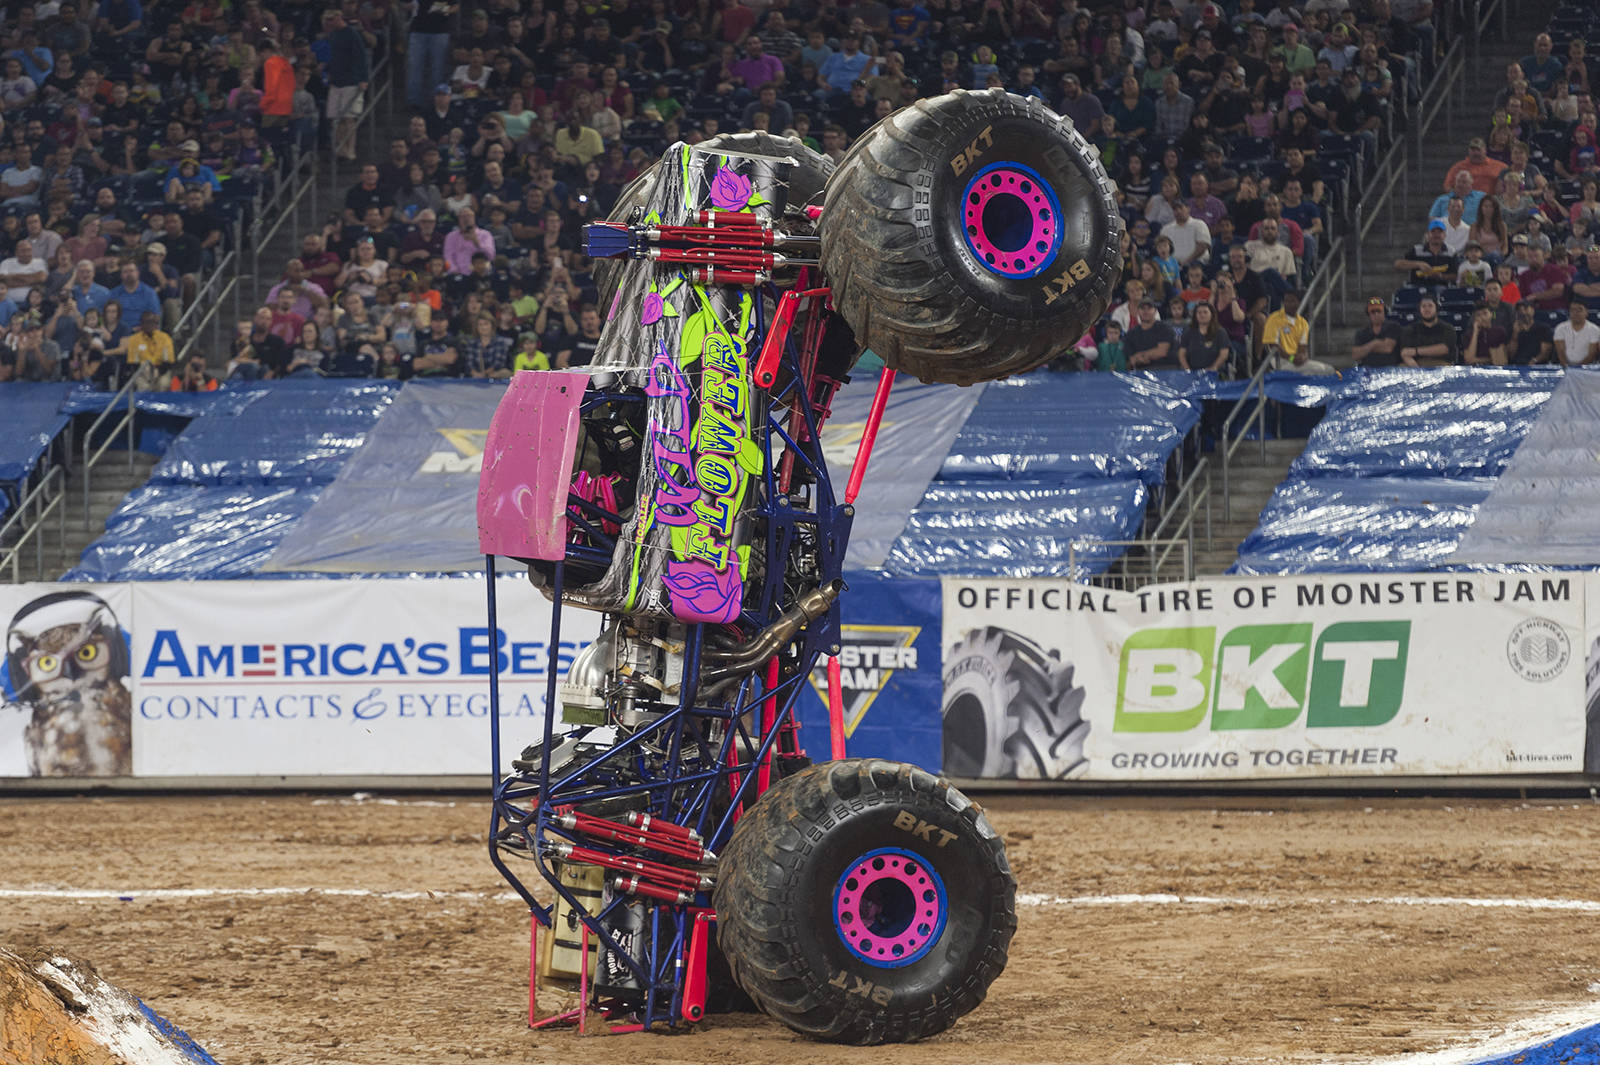 Action-packed Monster Jam returns to Vancouver this March